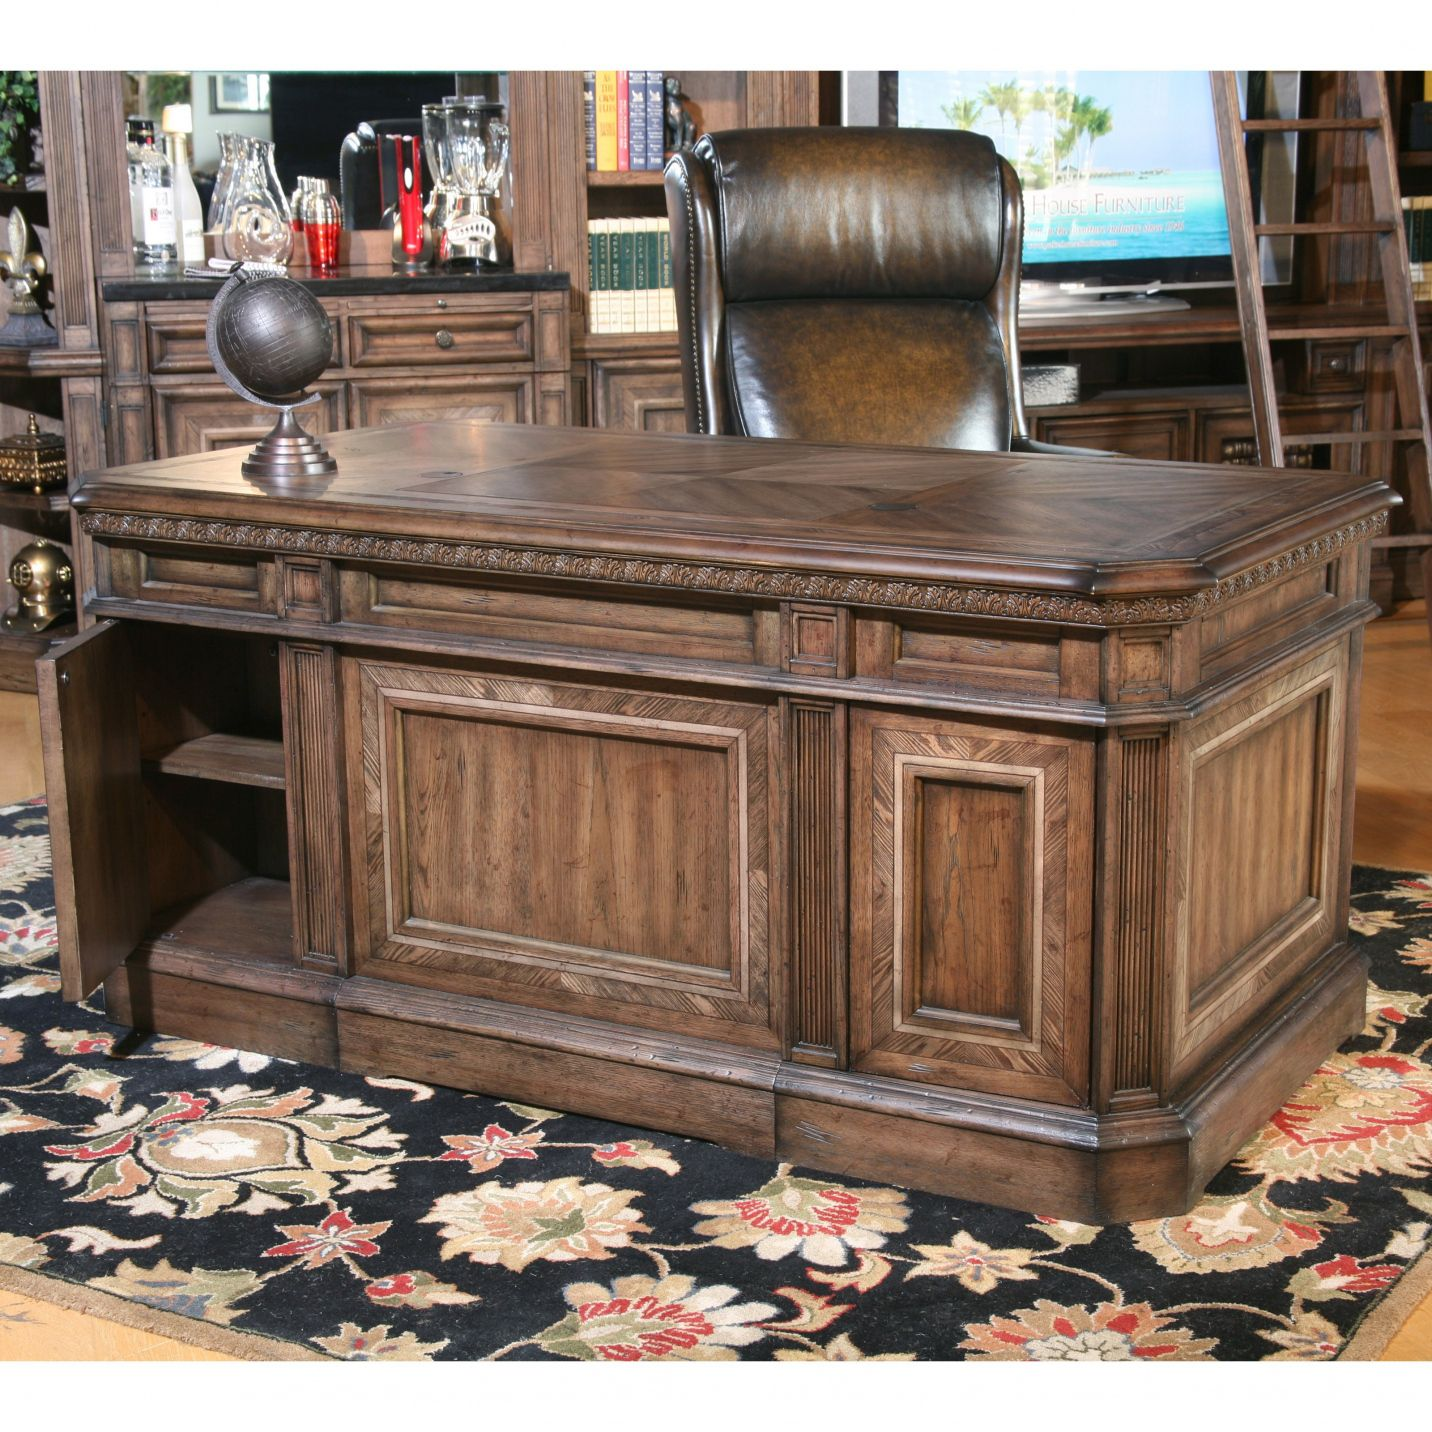 Antique Executive Desks for Sale - Luxury Home Office Furniture Check more  at http:/ - Antique Executive Desks For Sale - Luxury Home Office Furniture